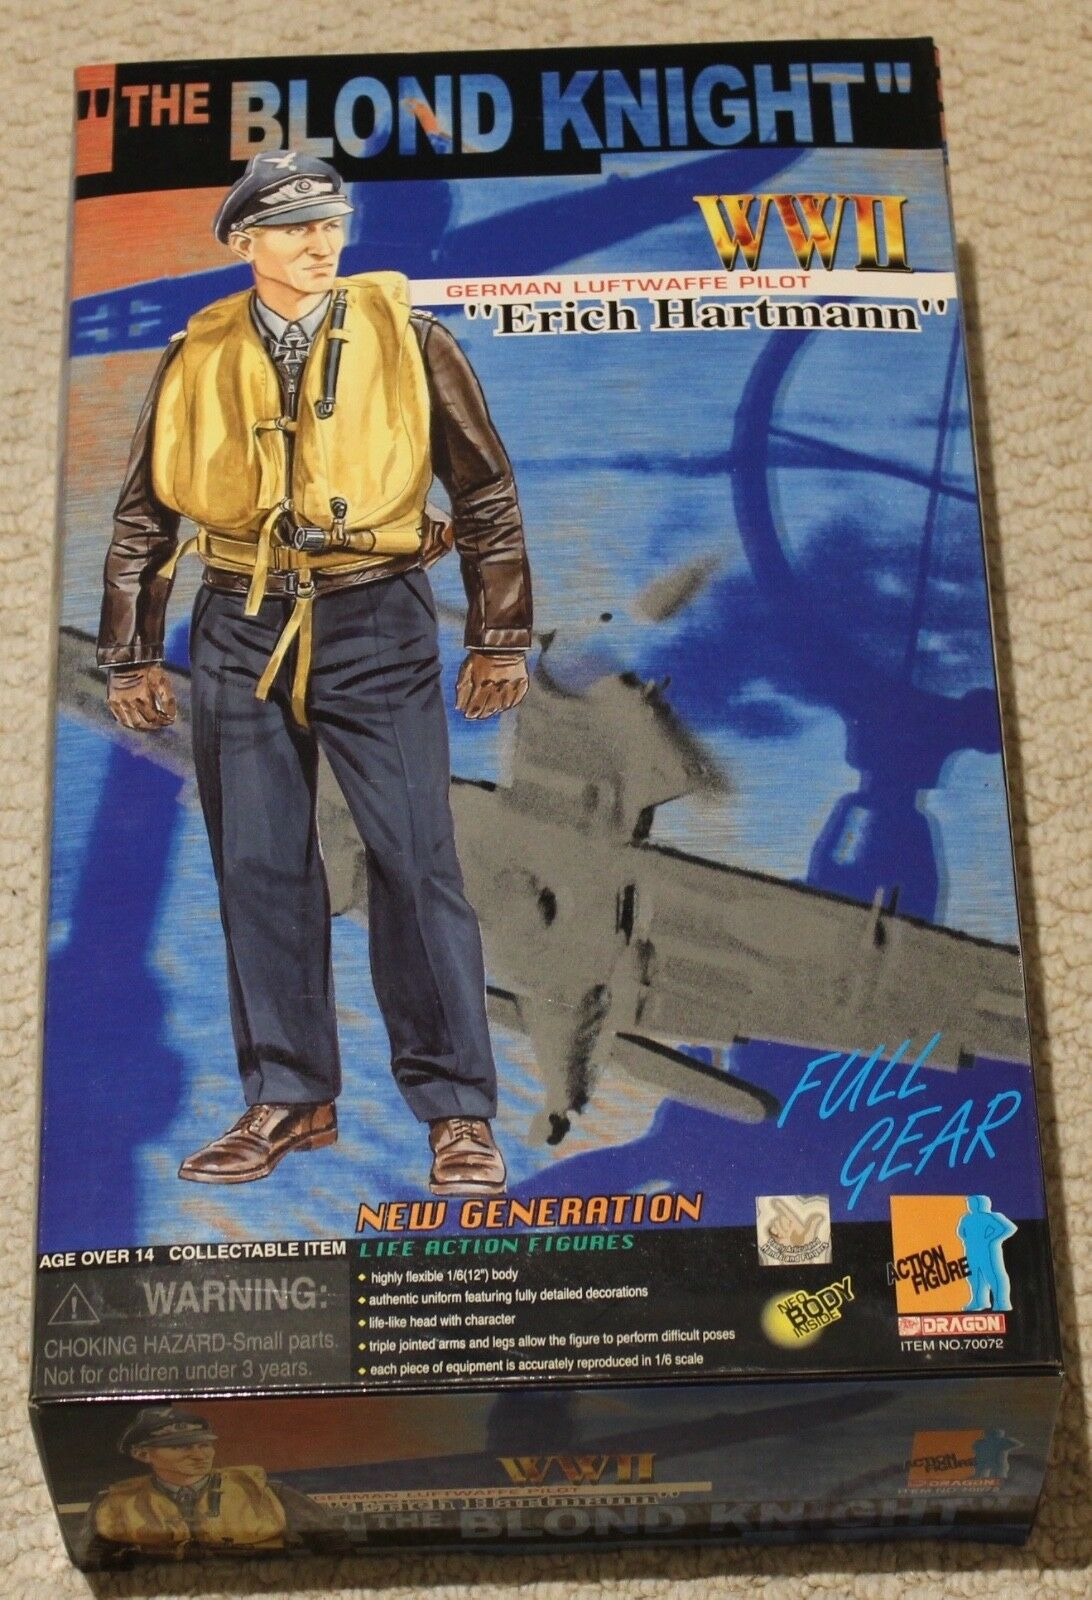 Dragon action figure 1 6 ww11 german pilot hartmann 12'' boxed did cyber hot toy